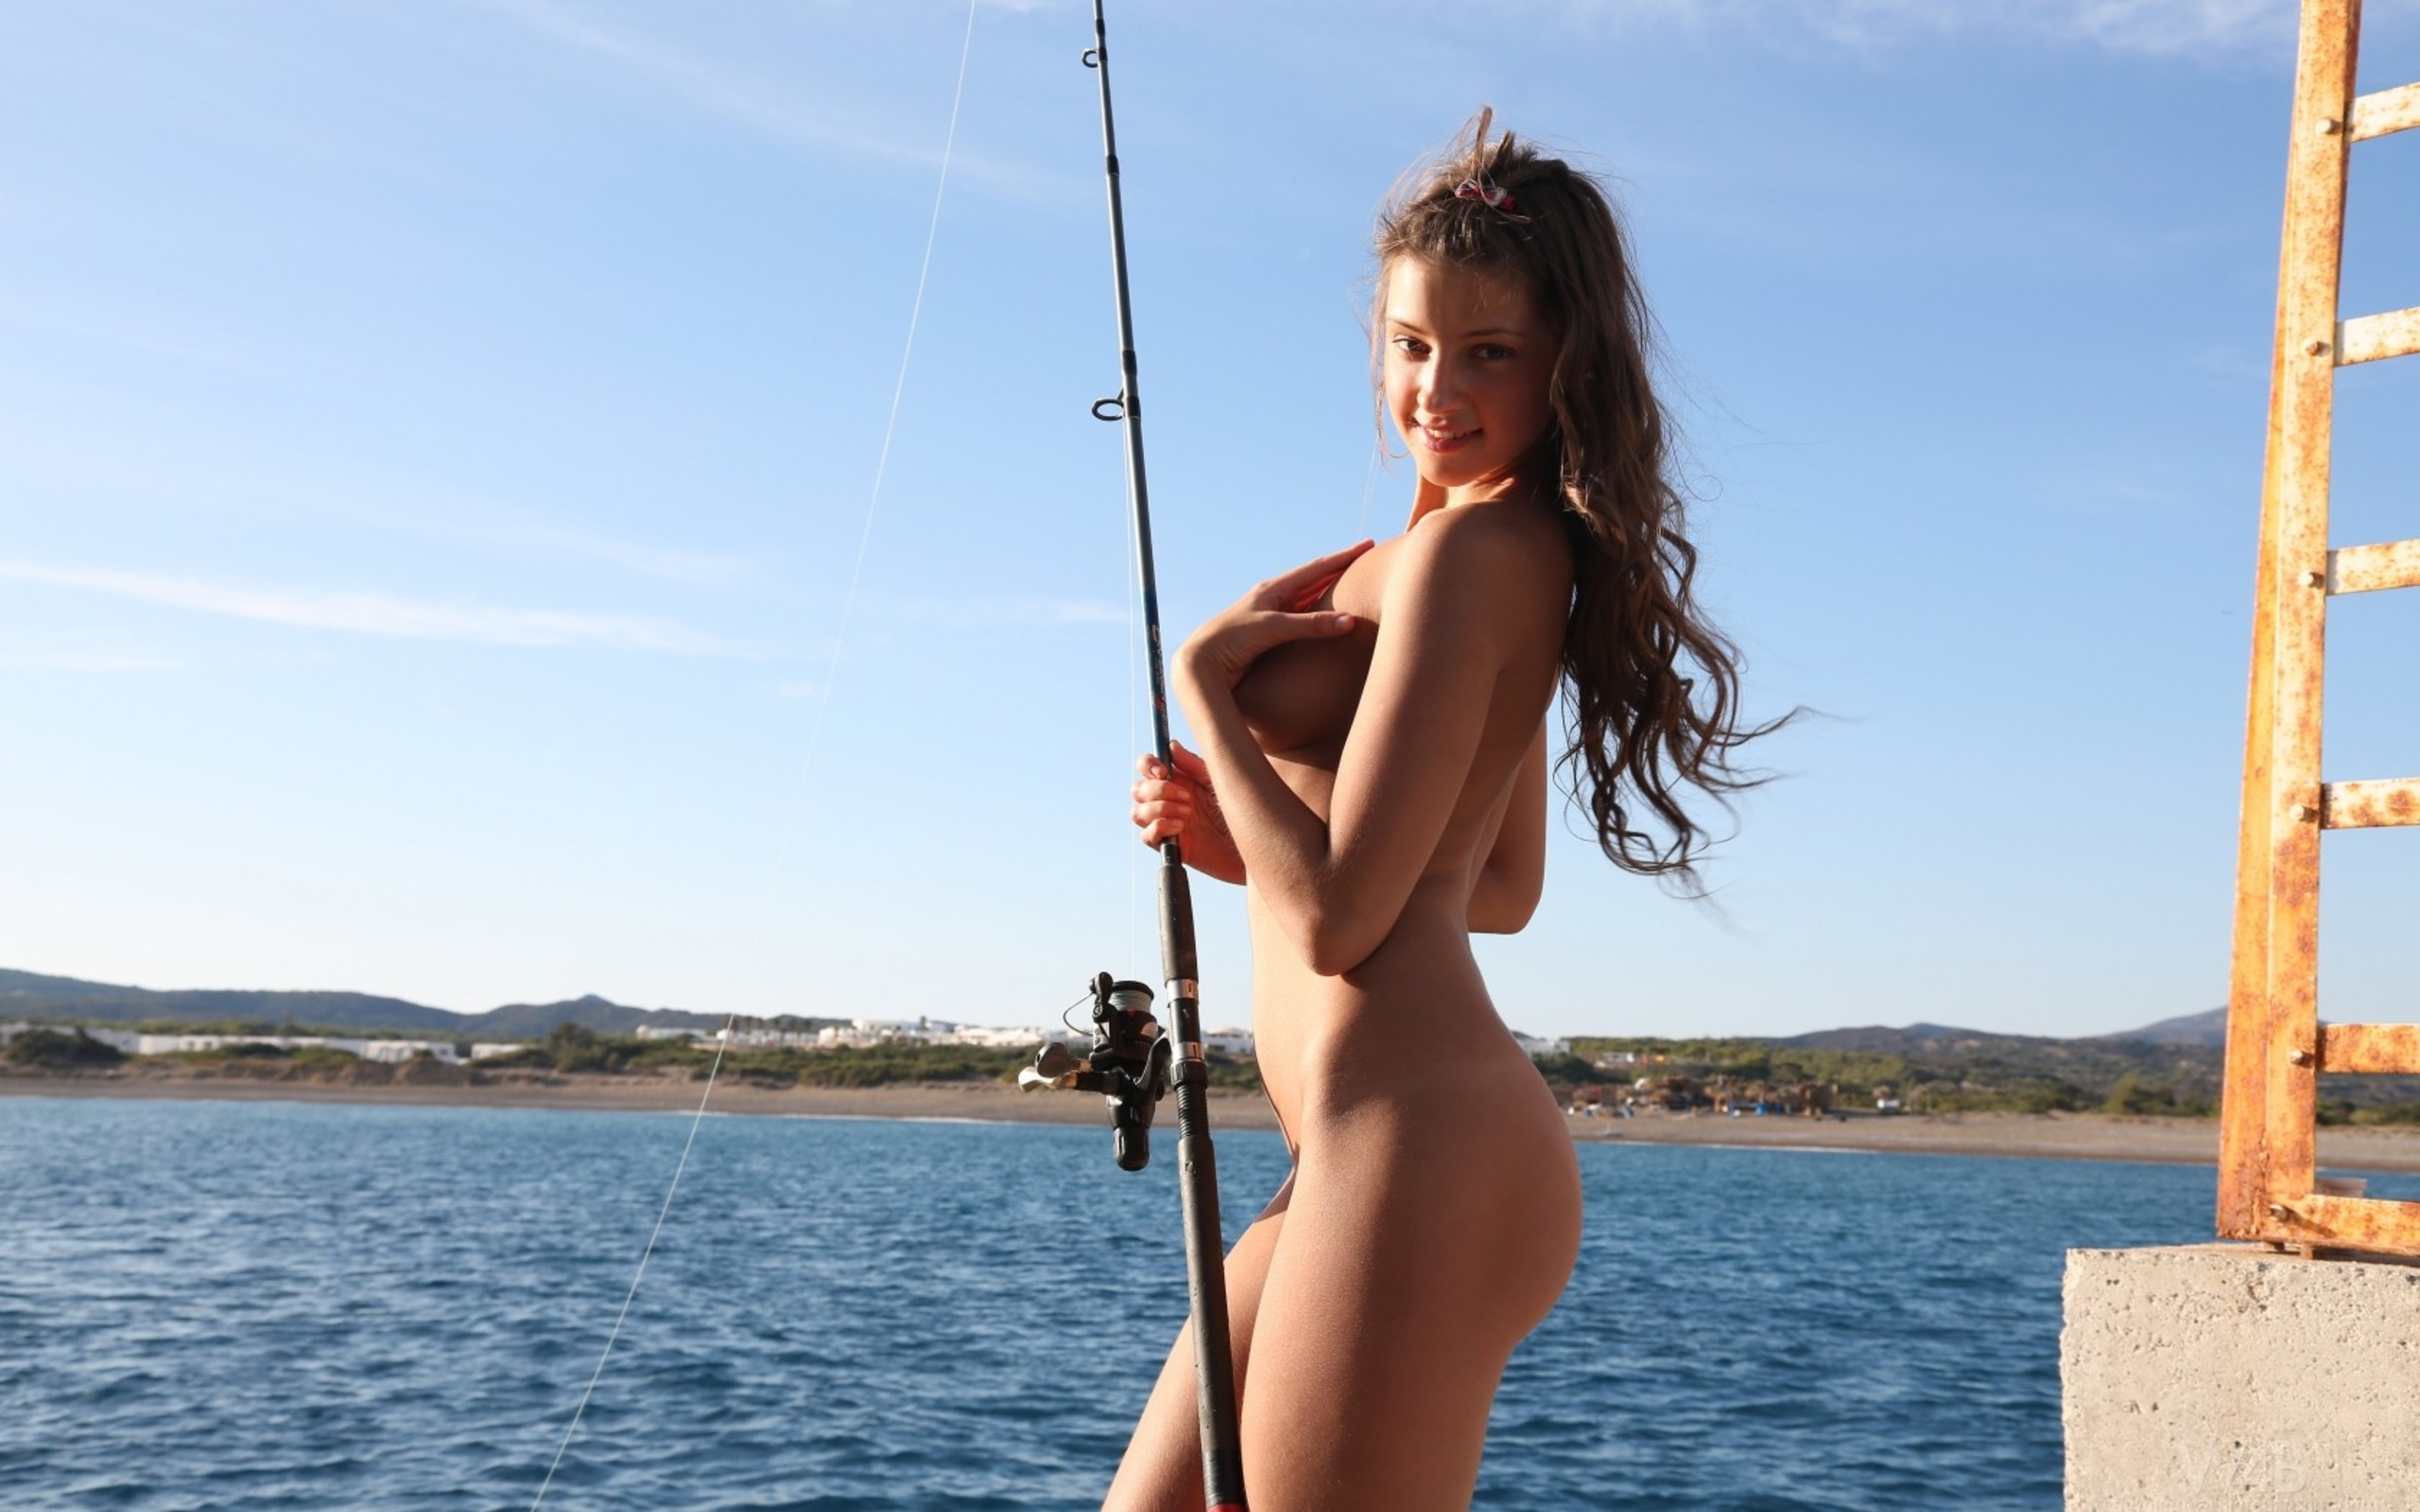 Pin on sexy women fishing